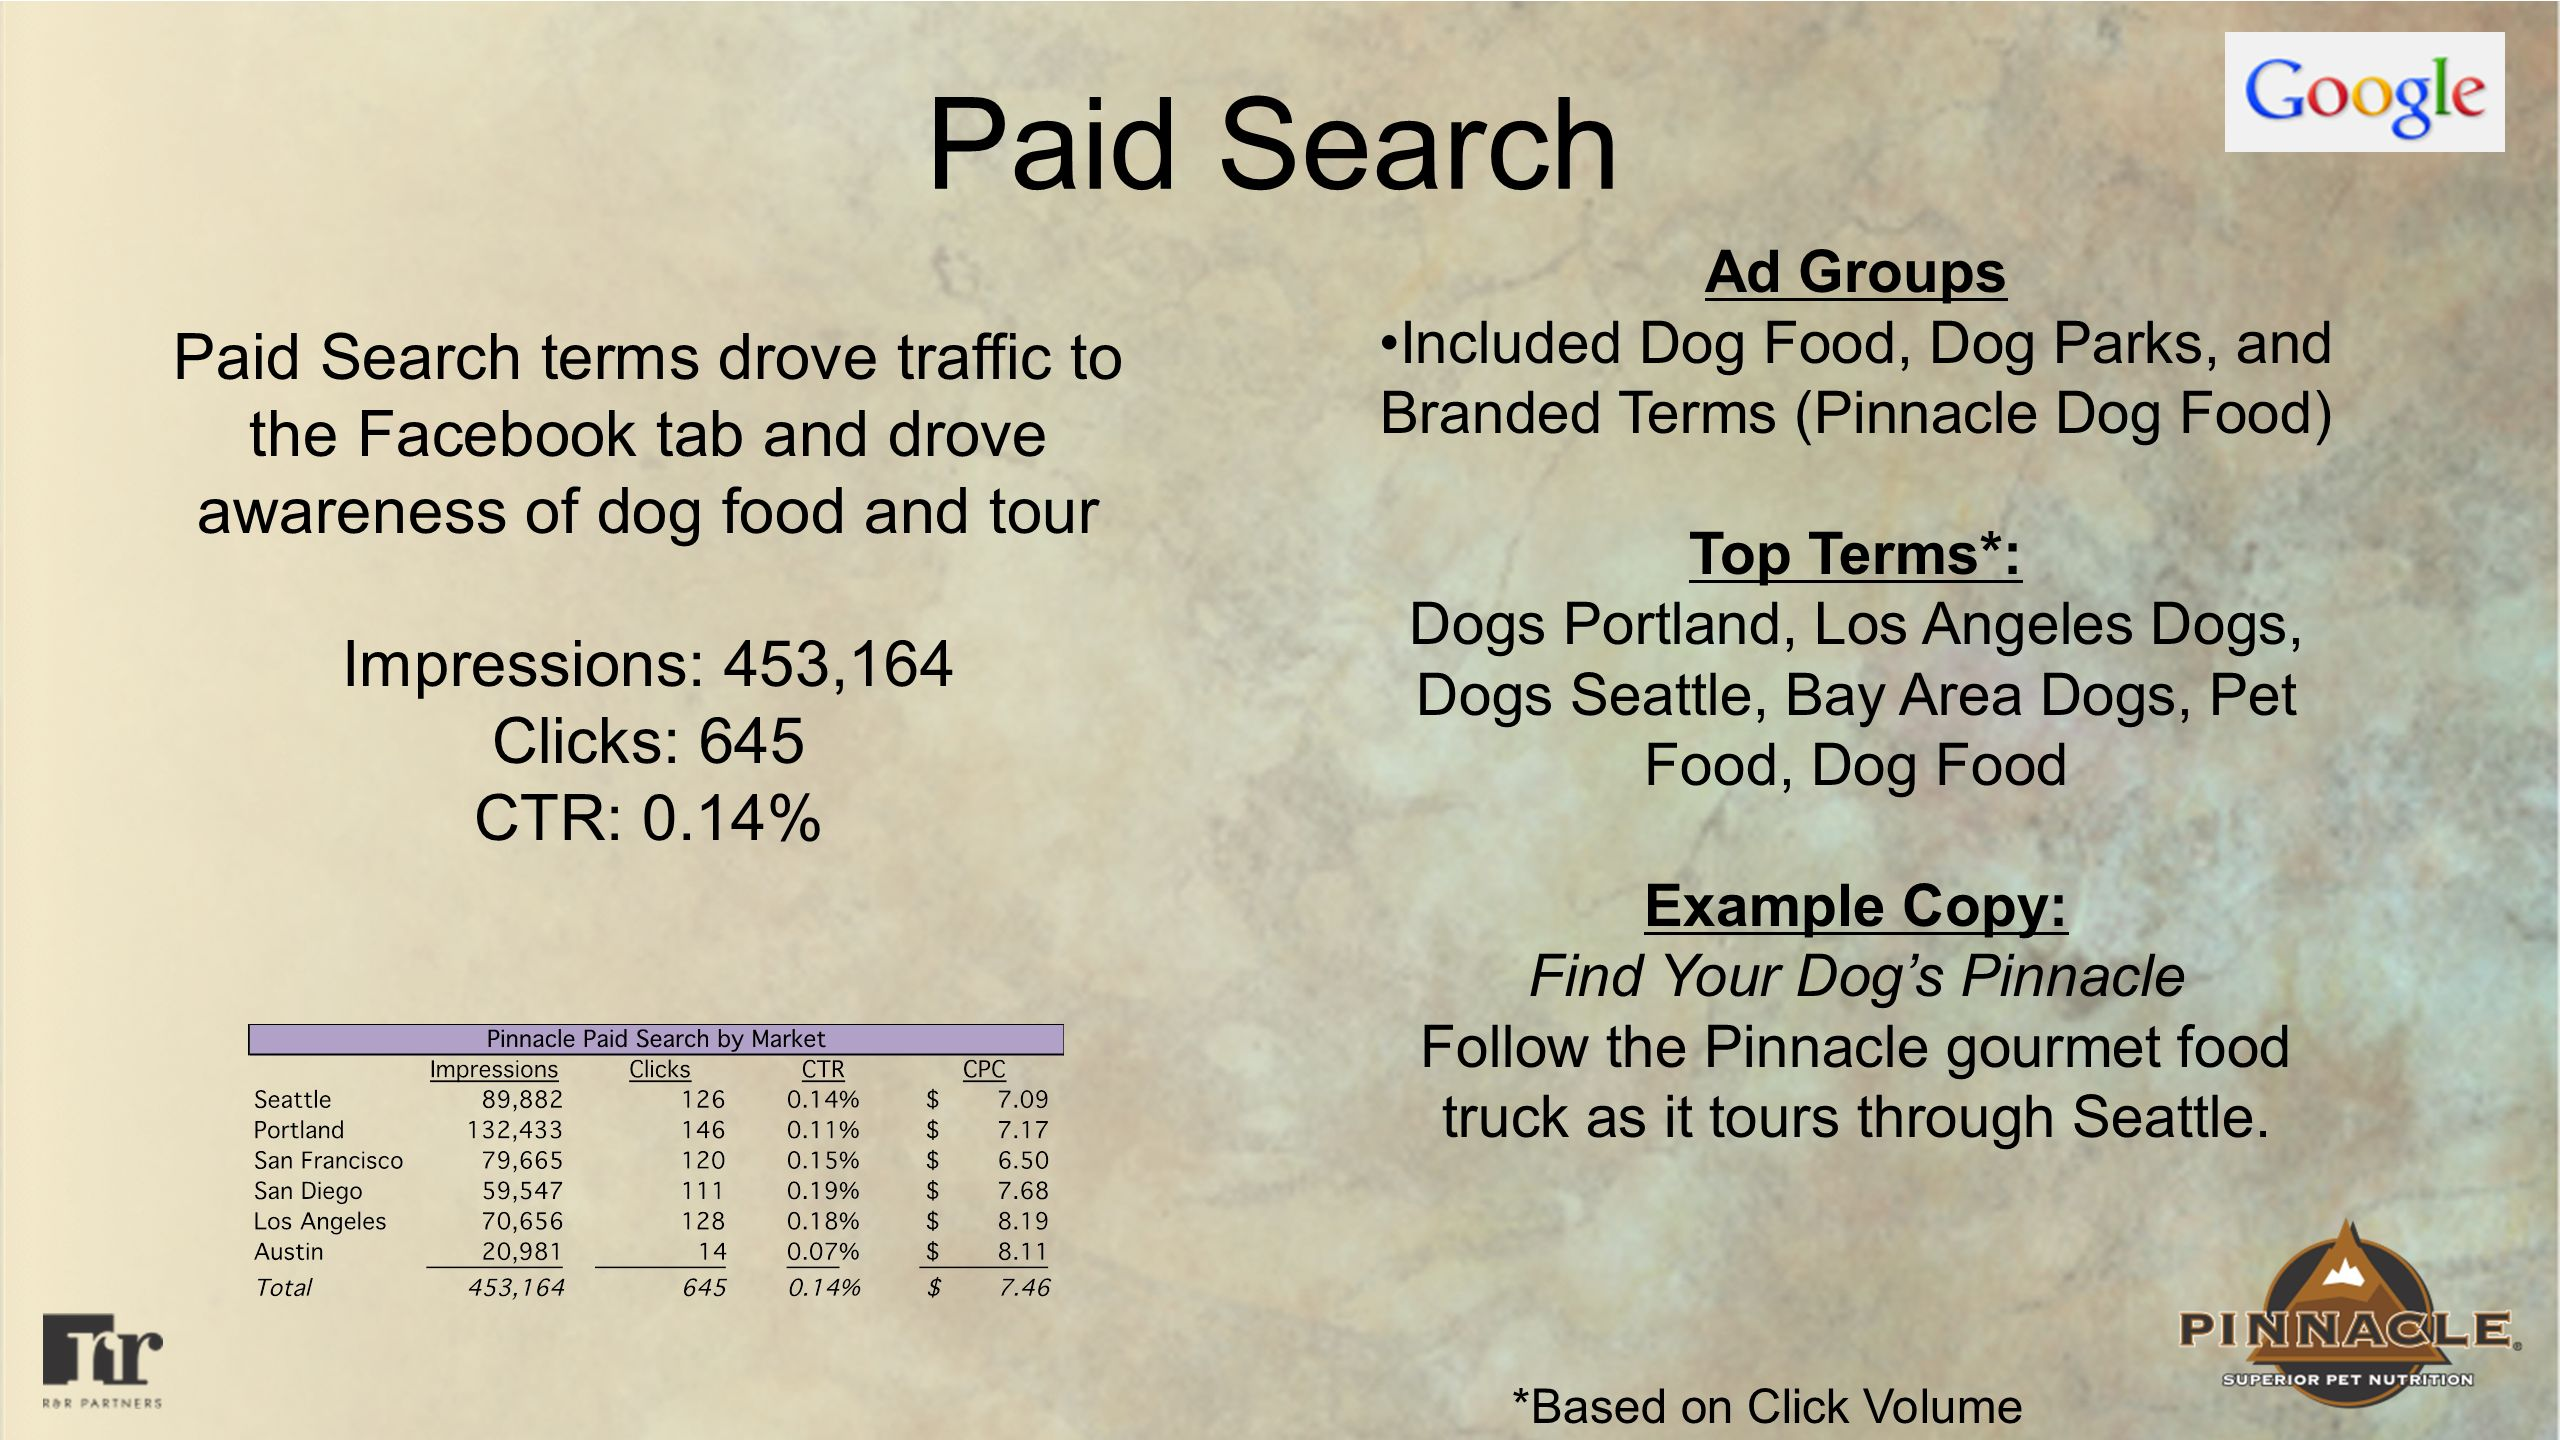 Paid Search Paid Search terms drove traffic to the Facebook tab and drove awareness of dog food and tour Impressions: 453,164 Clicks: 645 CTR: 0.14% Ad Groups Included Dog Food, Dog Parks, and Branded Terms (Pinnacle Dog Food) Top Terms*: Dogs Portland, Los Angeles Dogs, Dogs Seattle, Bay Area Dogs, Pet Food, Dog Food Example Copy: Find Your Dogs Pinnacle Follow the Pinnacle gourmet food truck as it tours through Seattle.